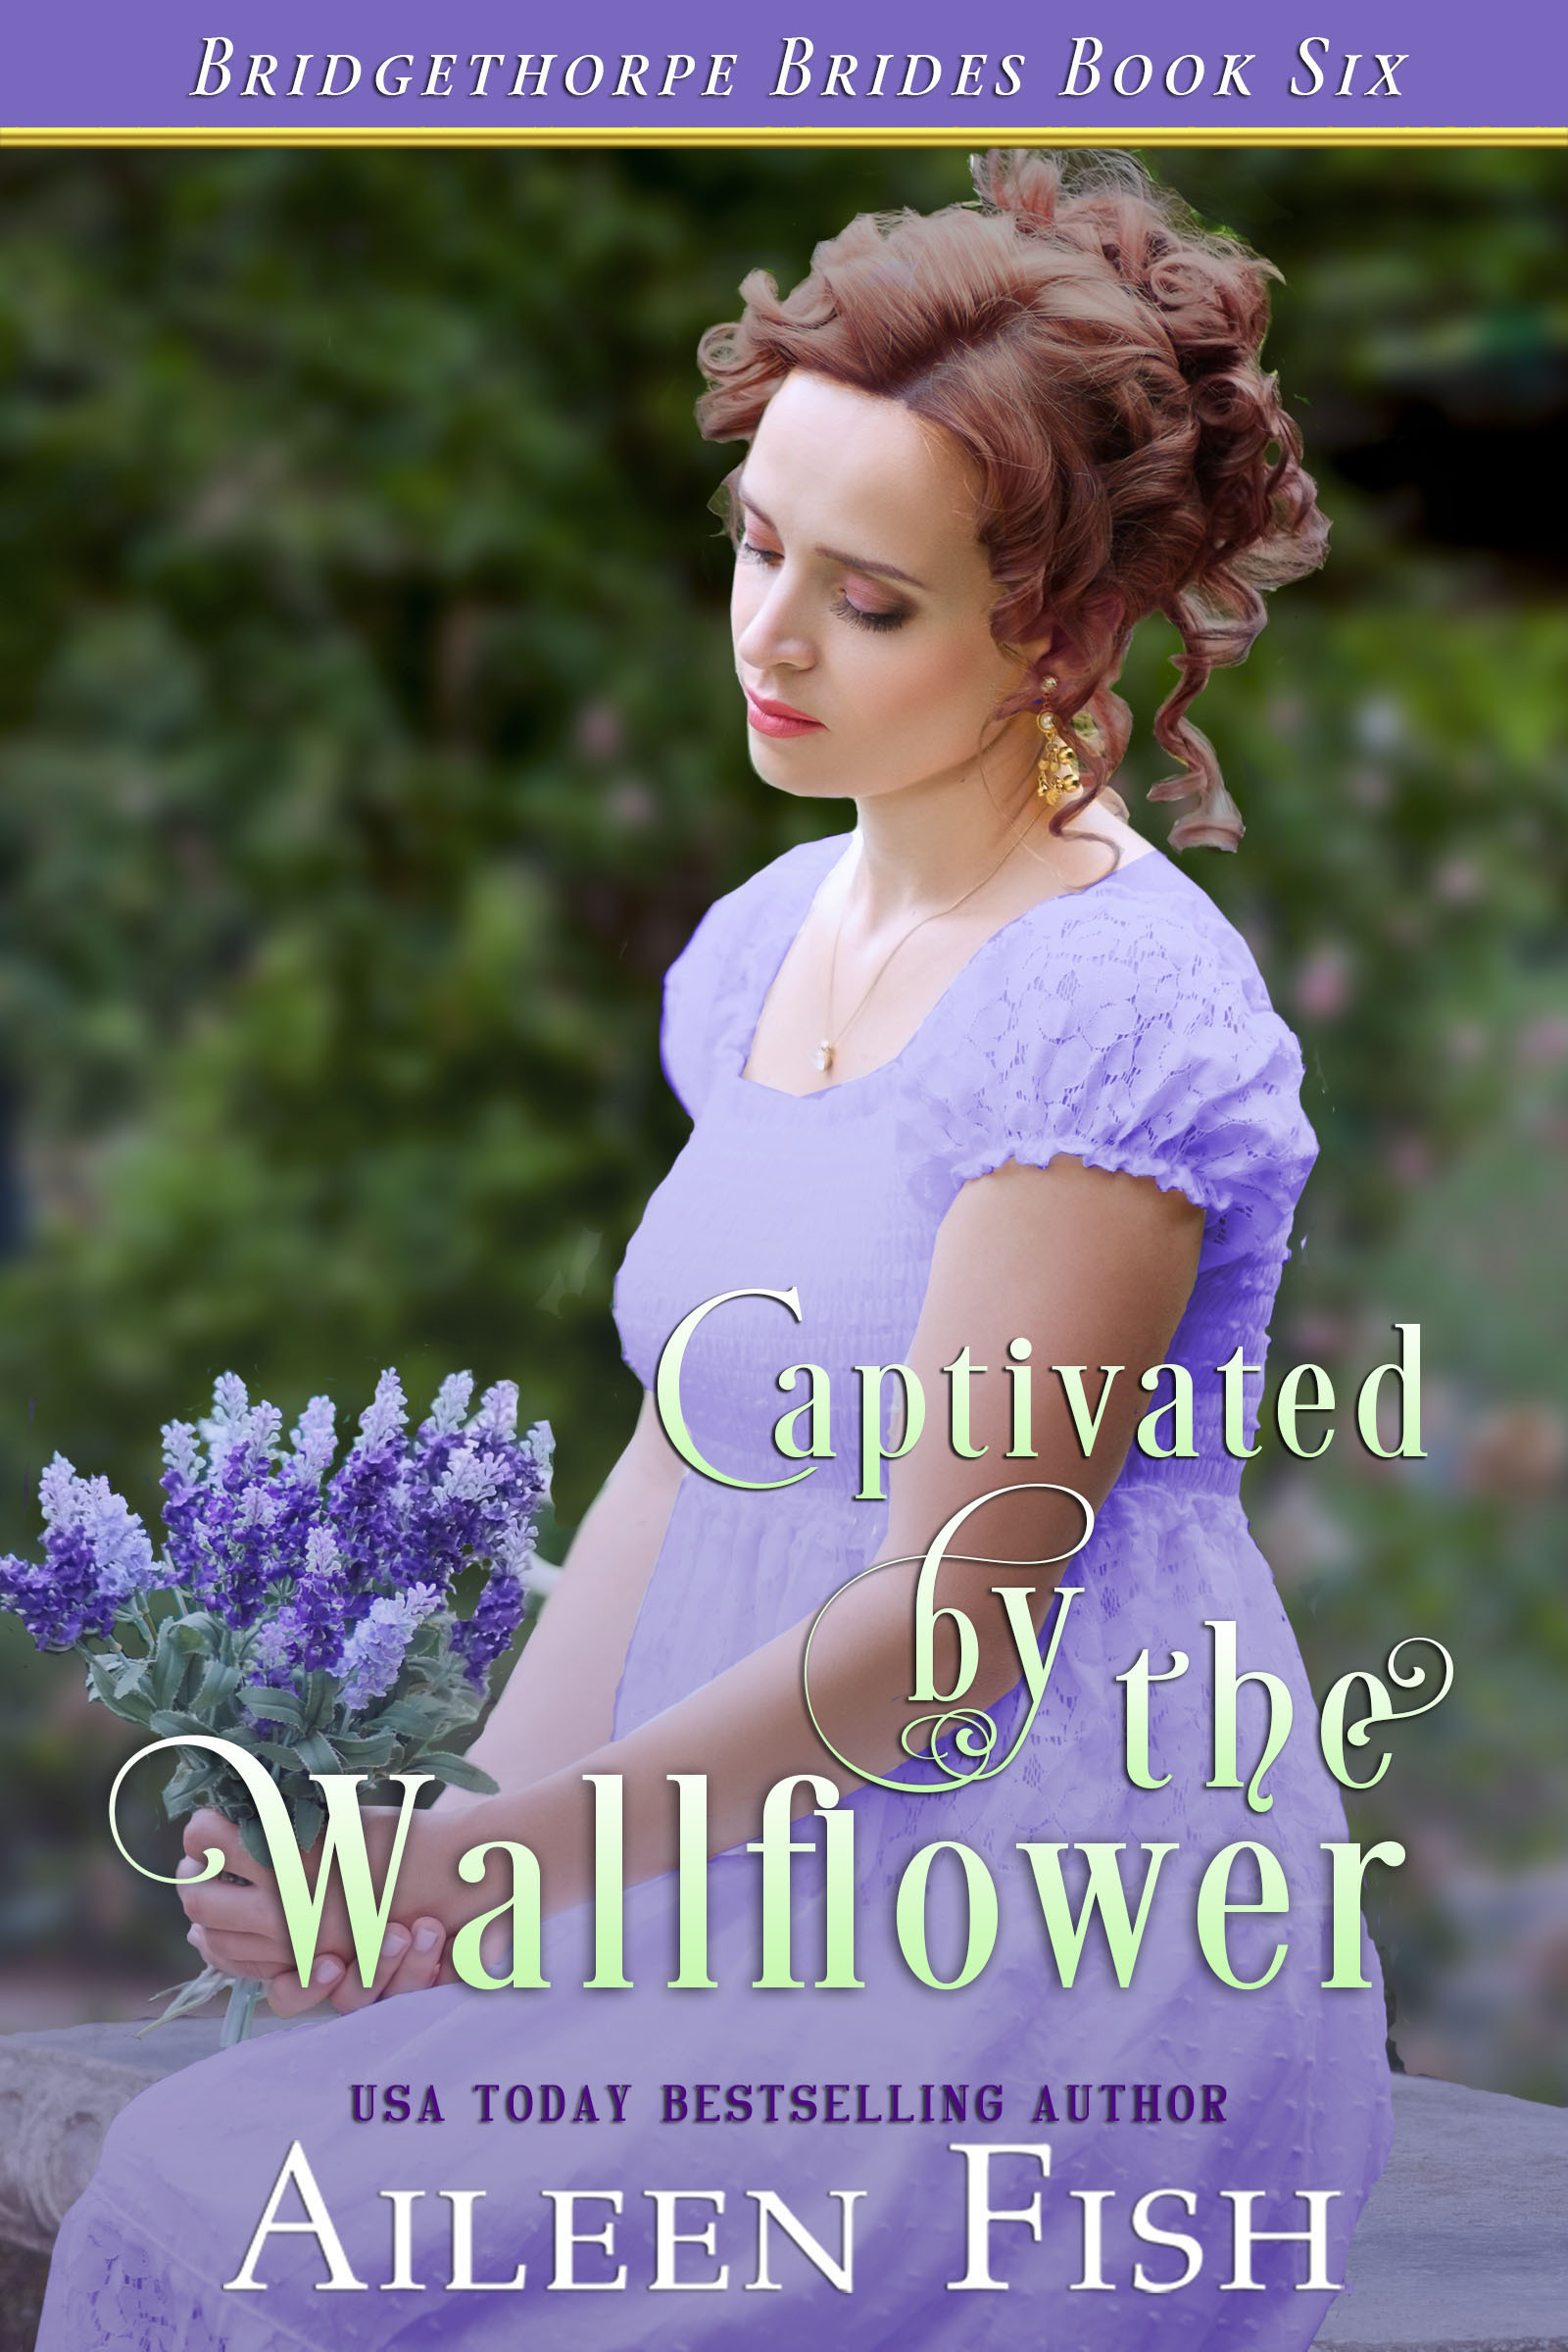 Captivated the Wallflower by Aileen Fish